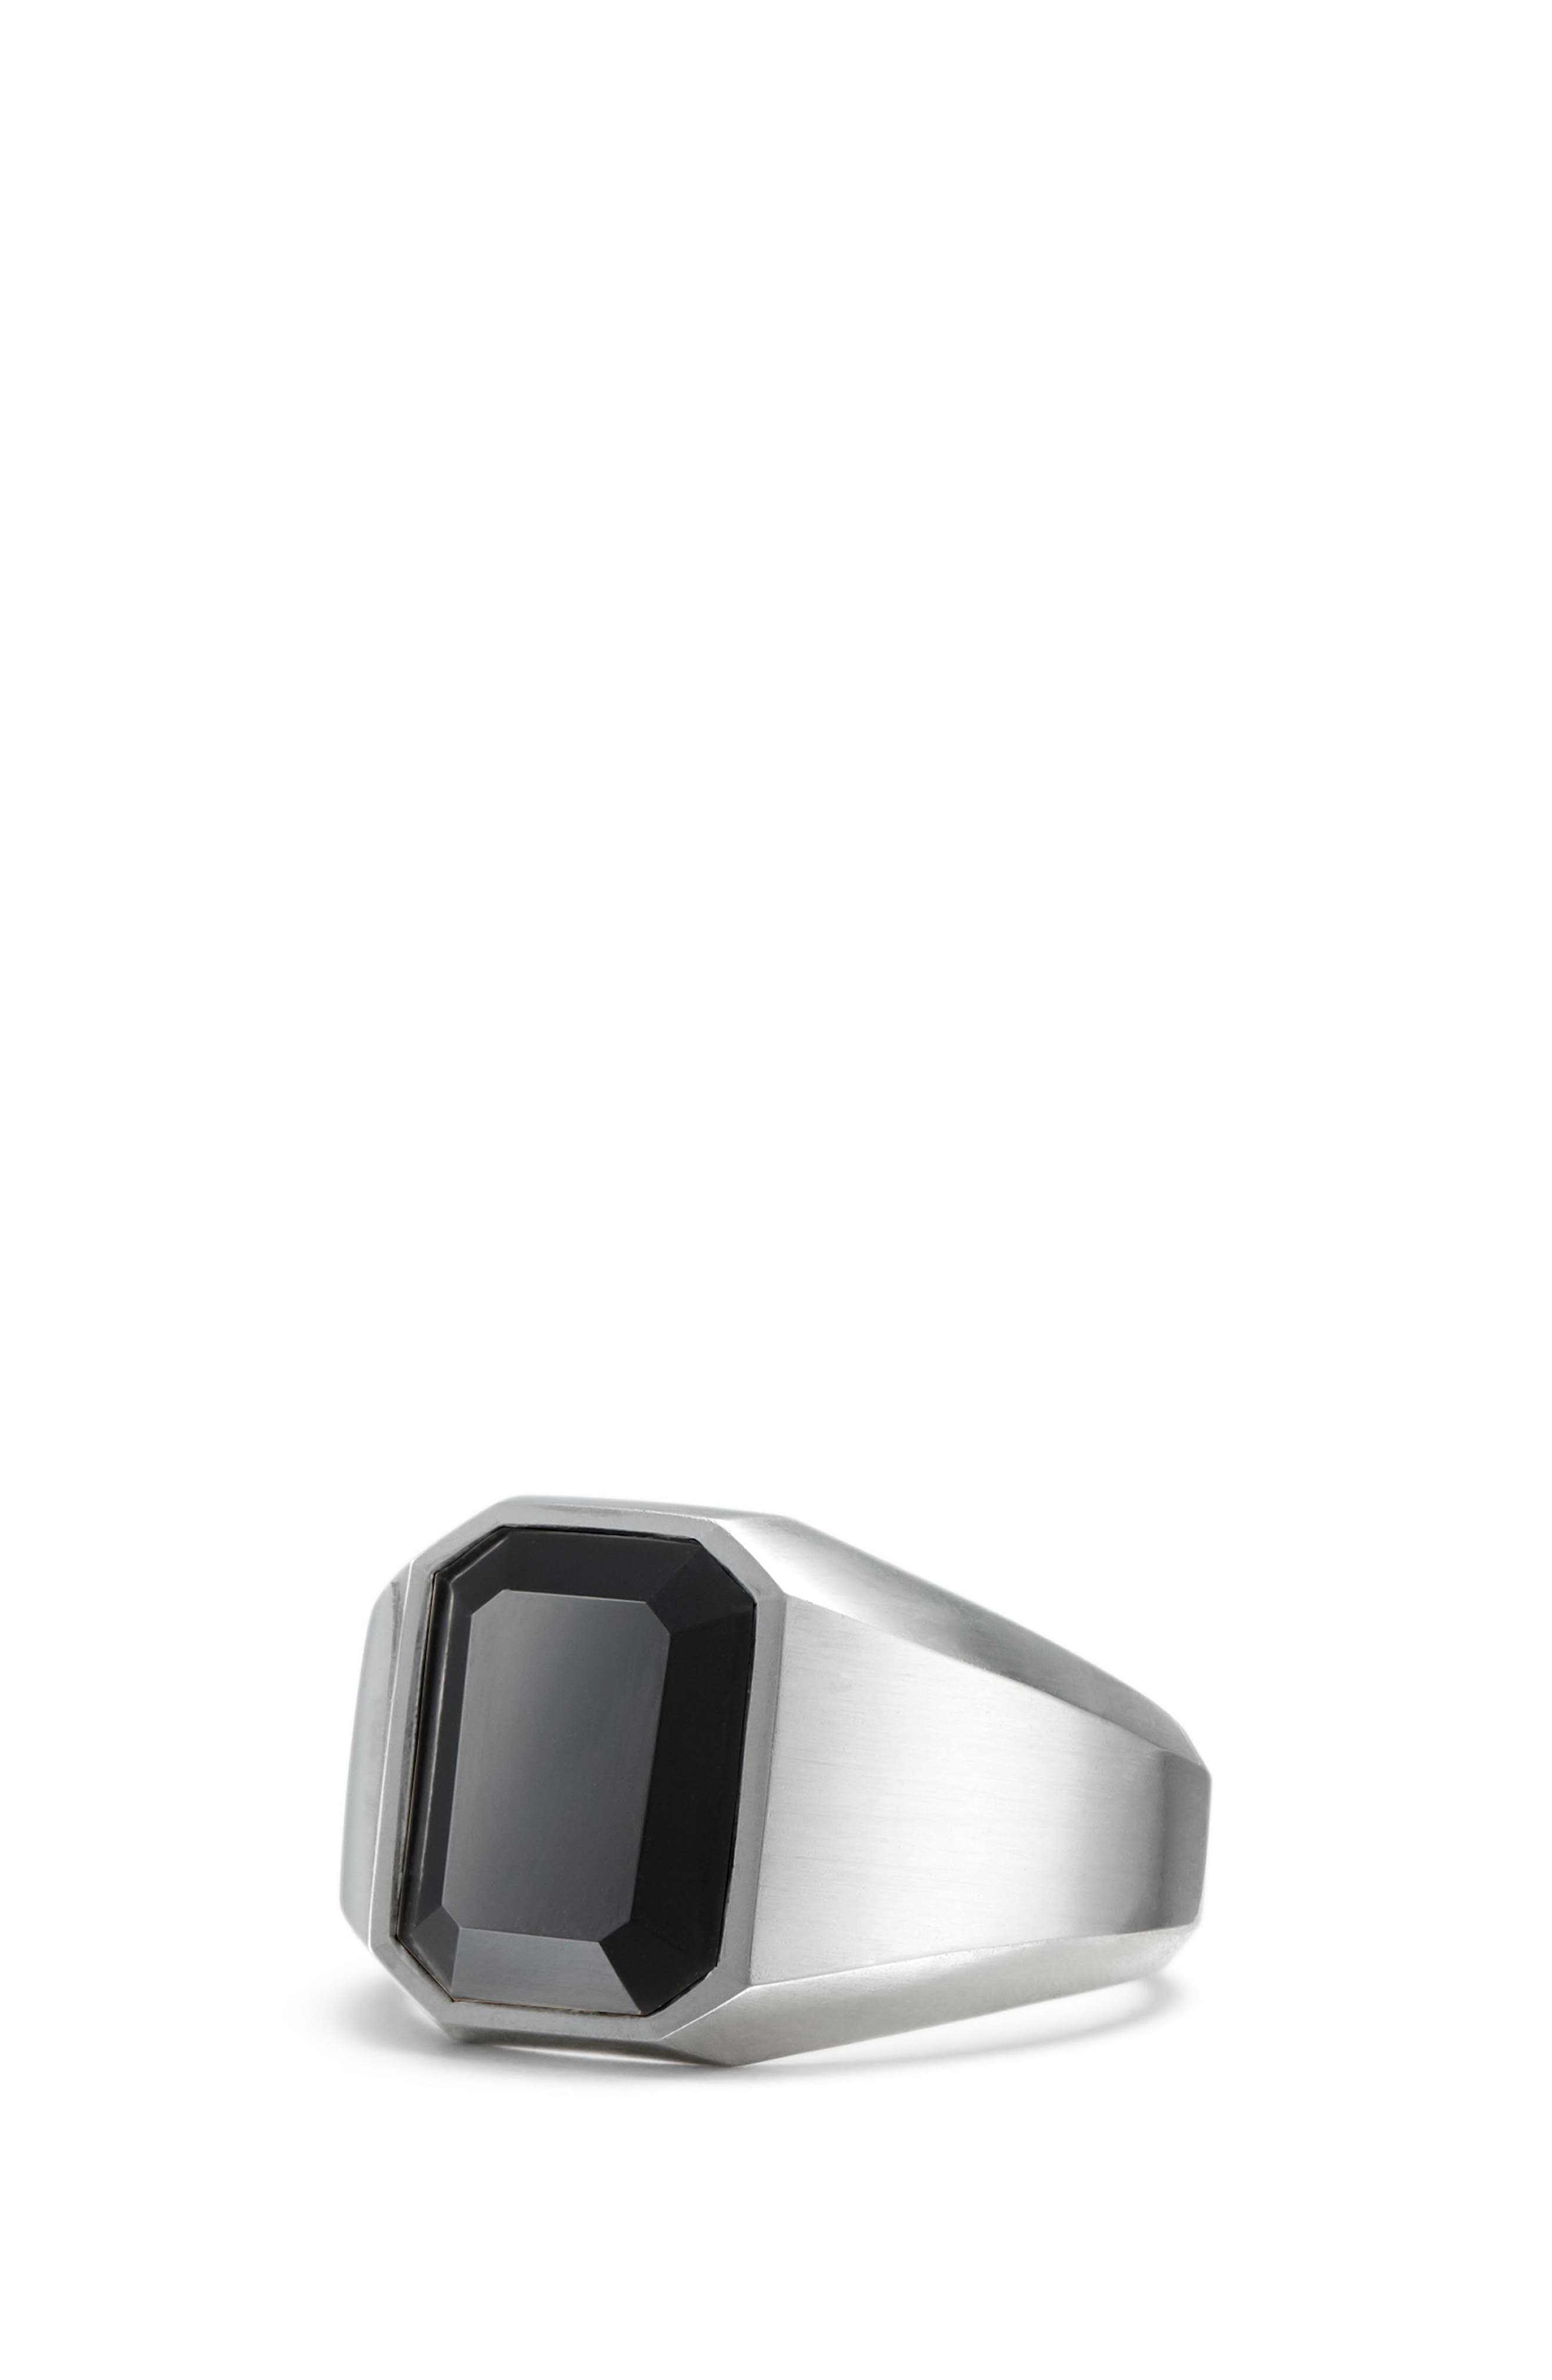 Onyx Signet Ring in Sterling Silver,                             Main thumbnail 1, color,                             BLACK ONYX